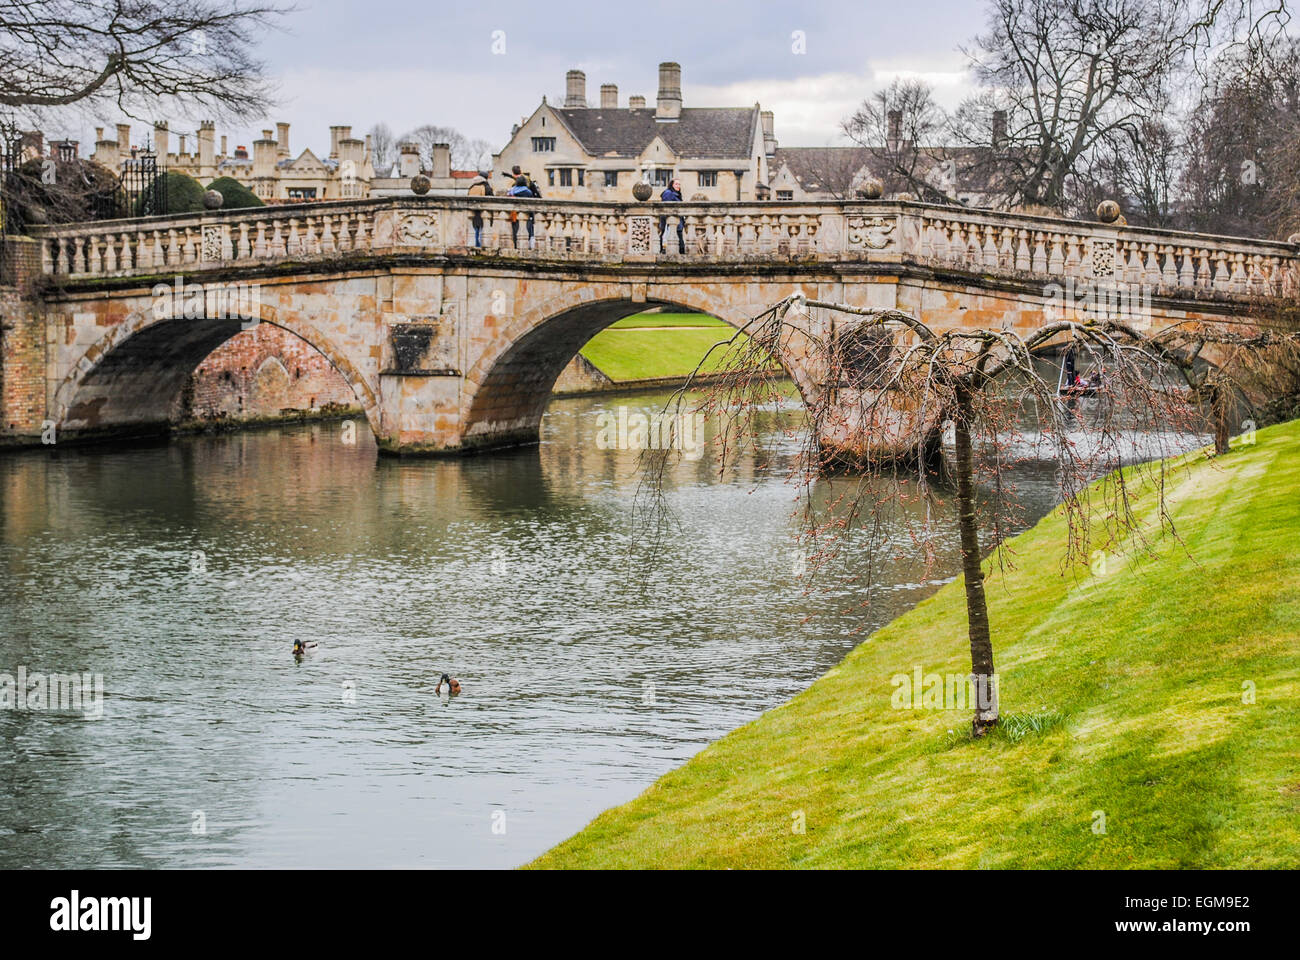 A small pedestrian bridge crosses the river Cam in one of the several parks of Cambridge (UK) - Stock Image